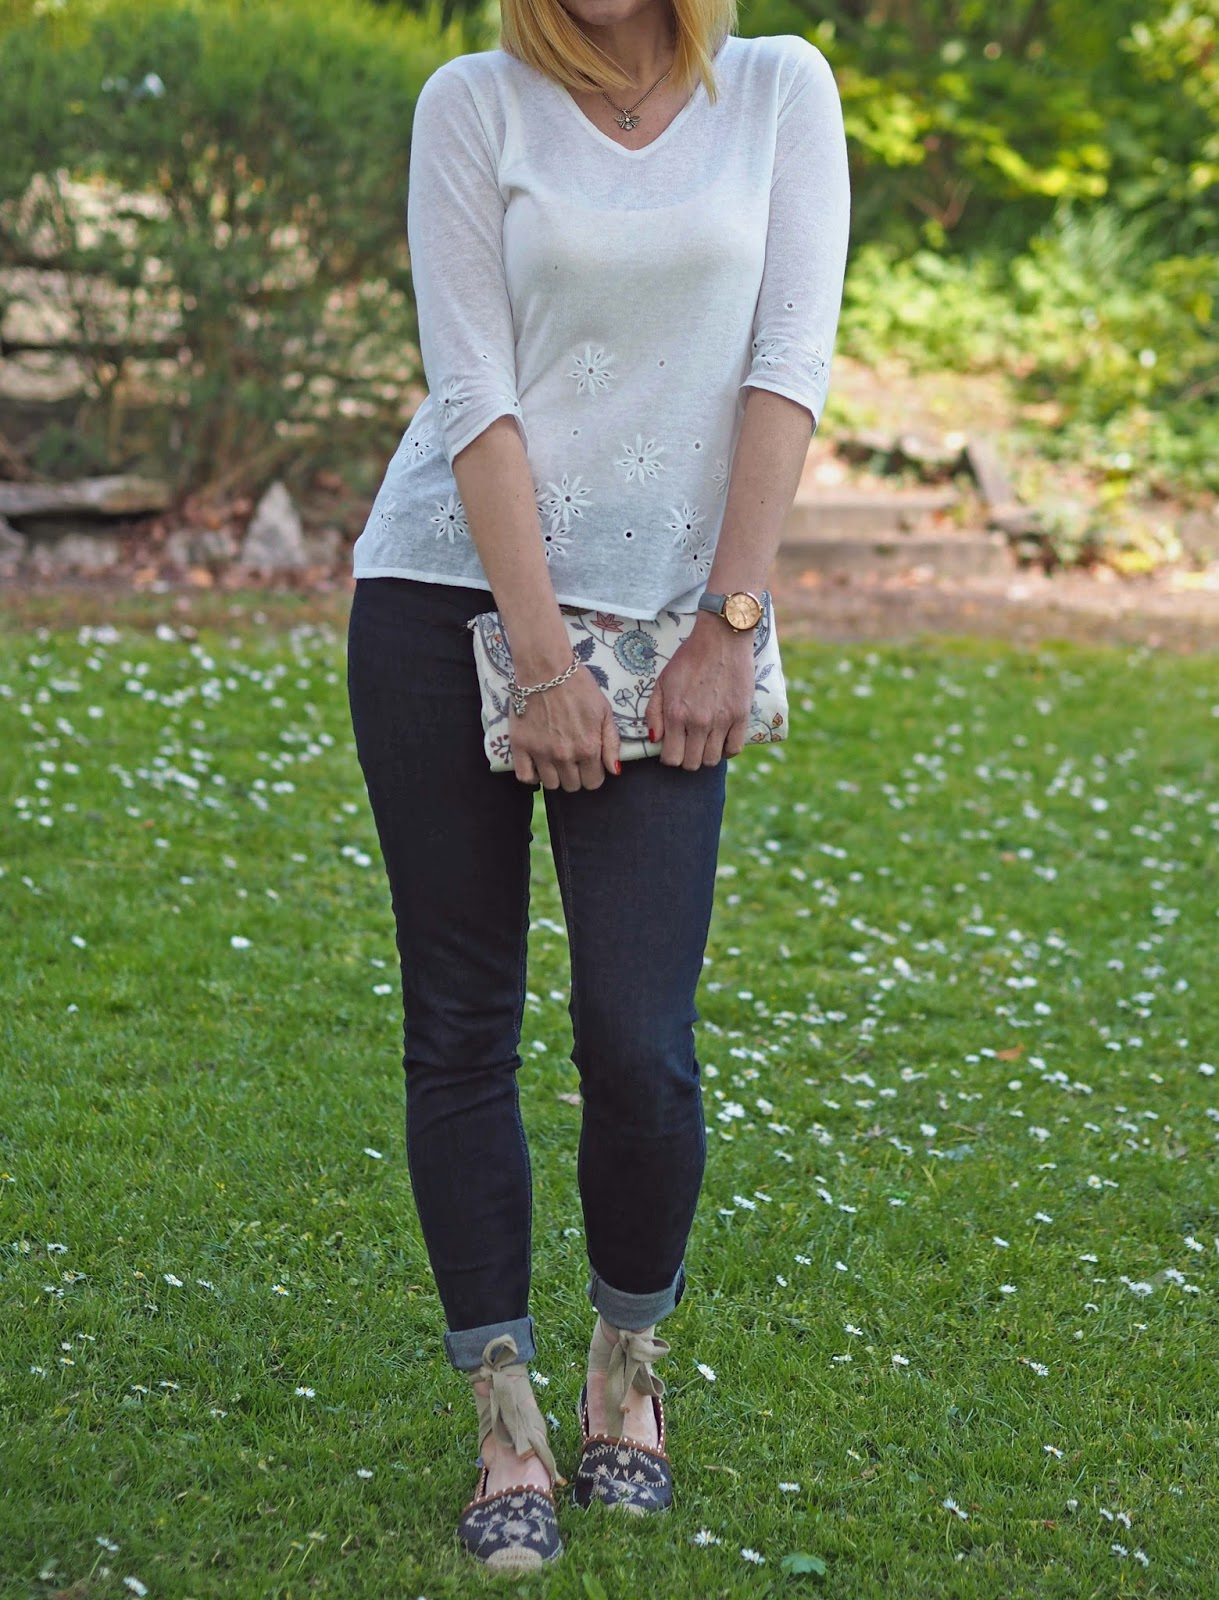 What-Lizzy-Loves-white-daisy-embroidered-linen-top-skinny-jeans-flower-embroidered-espadrilles-clutch-bag-grey-watch